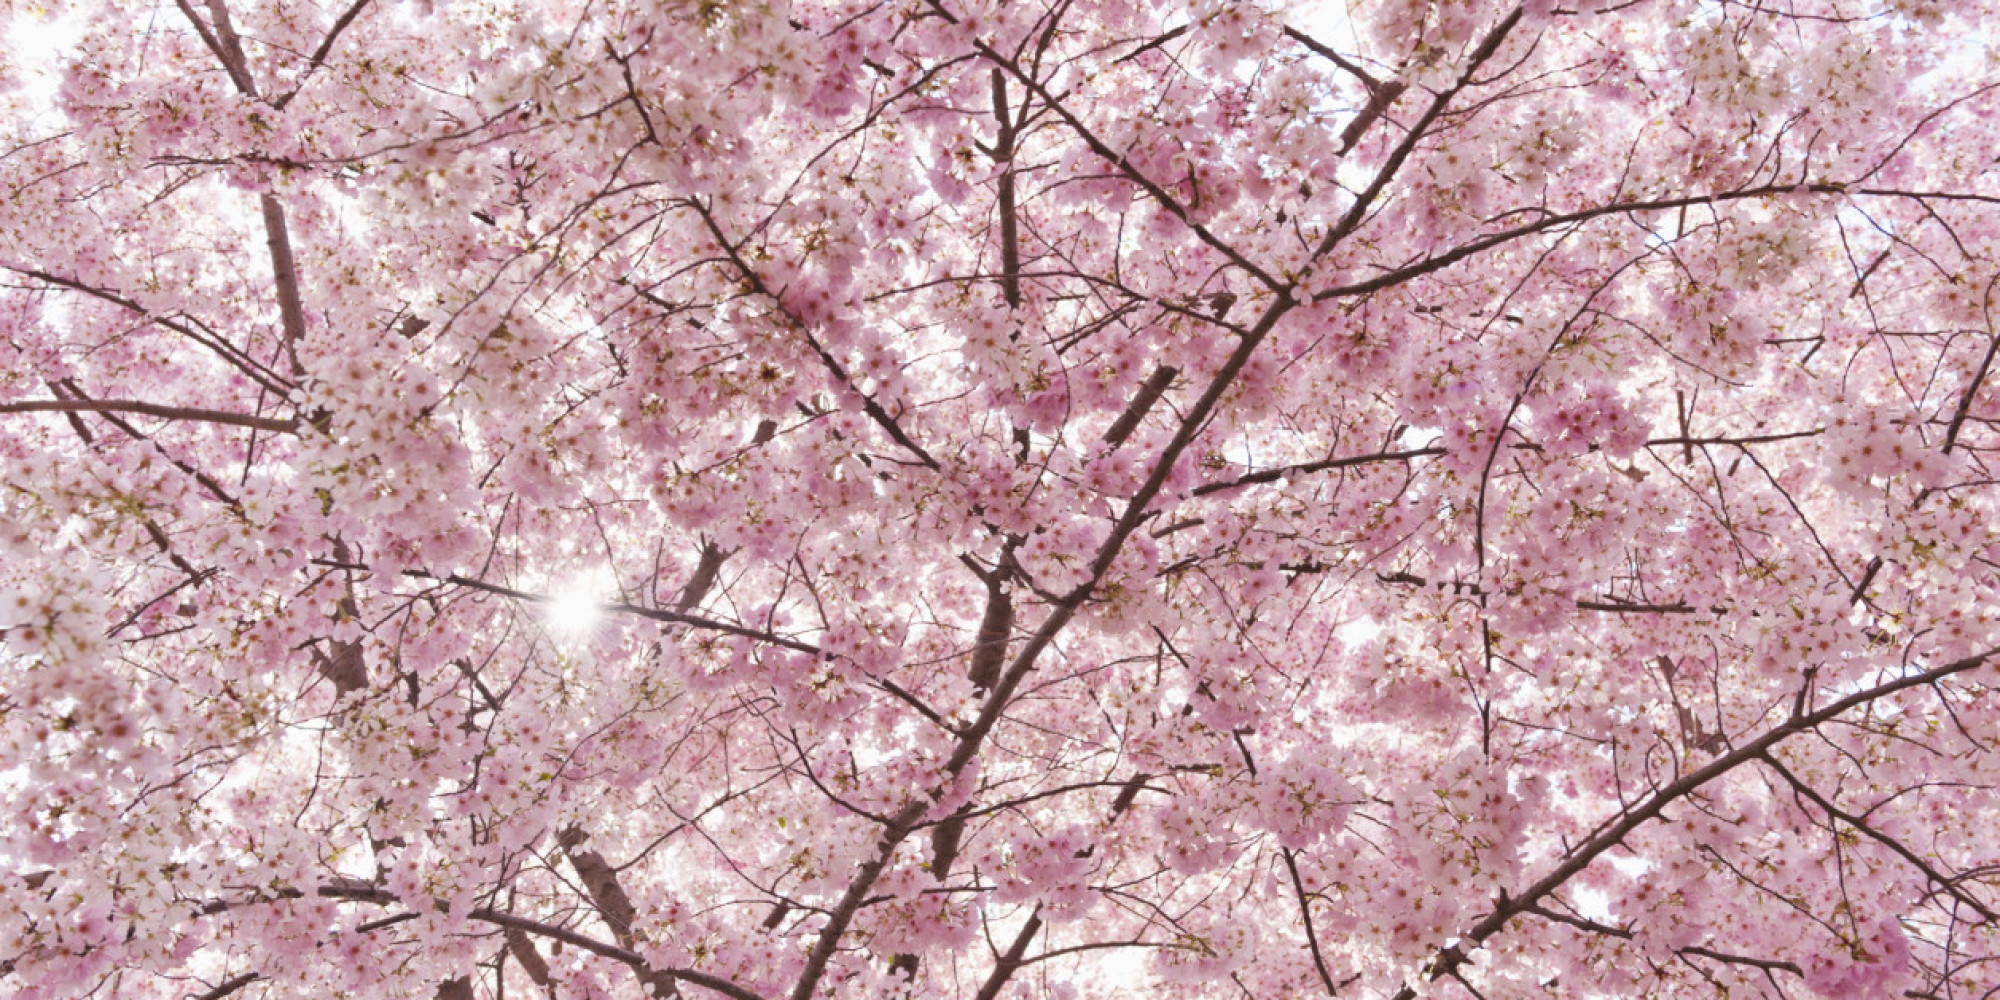 Falling Cherry Blossom Wallpaper Hd Pretty In Pink It S Cherry Blossom Time In Japan Huffpost